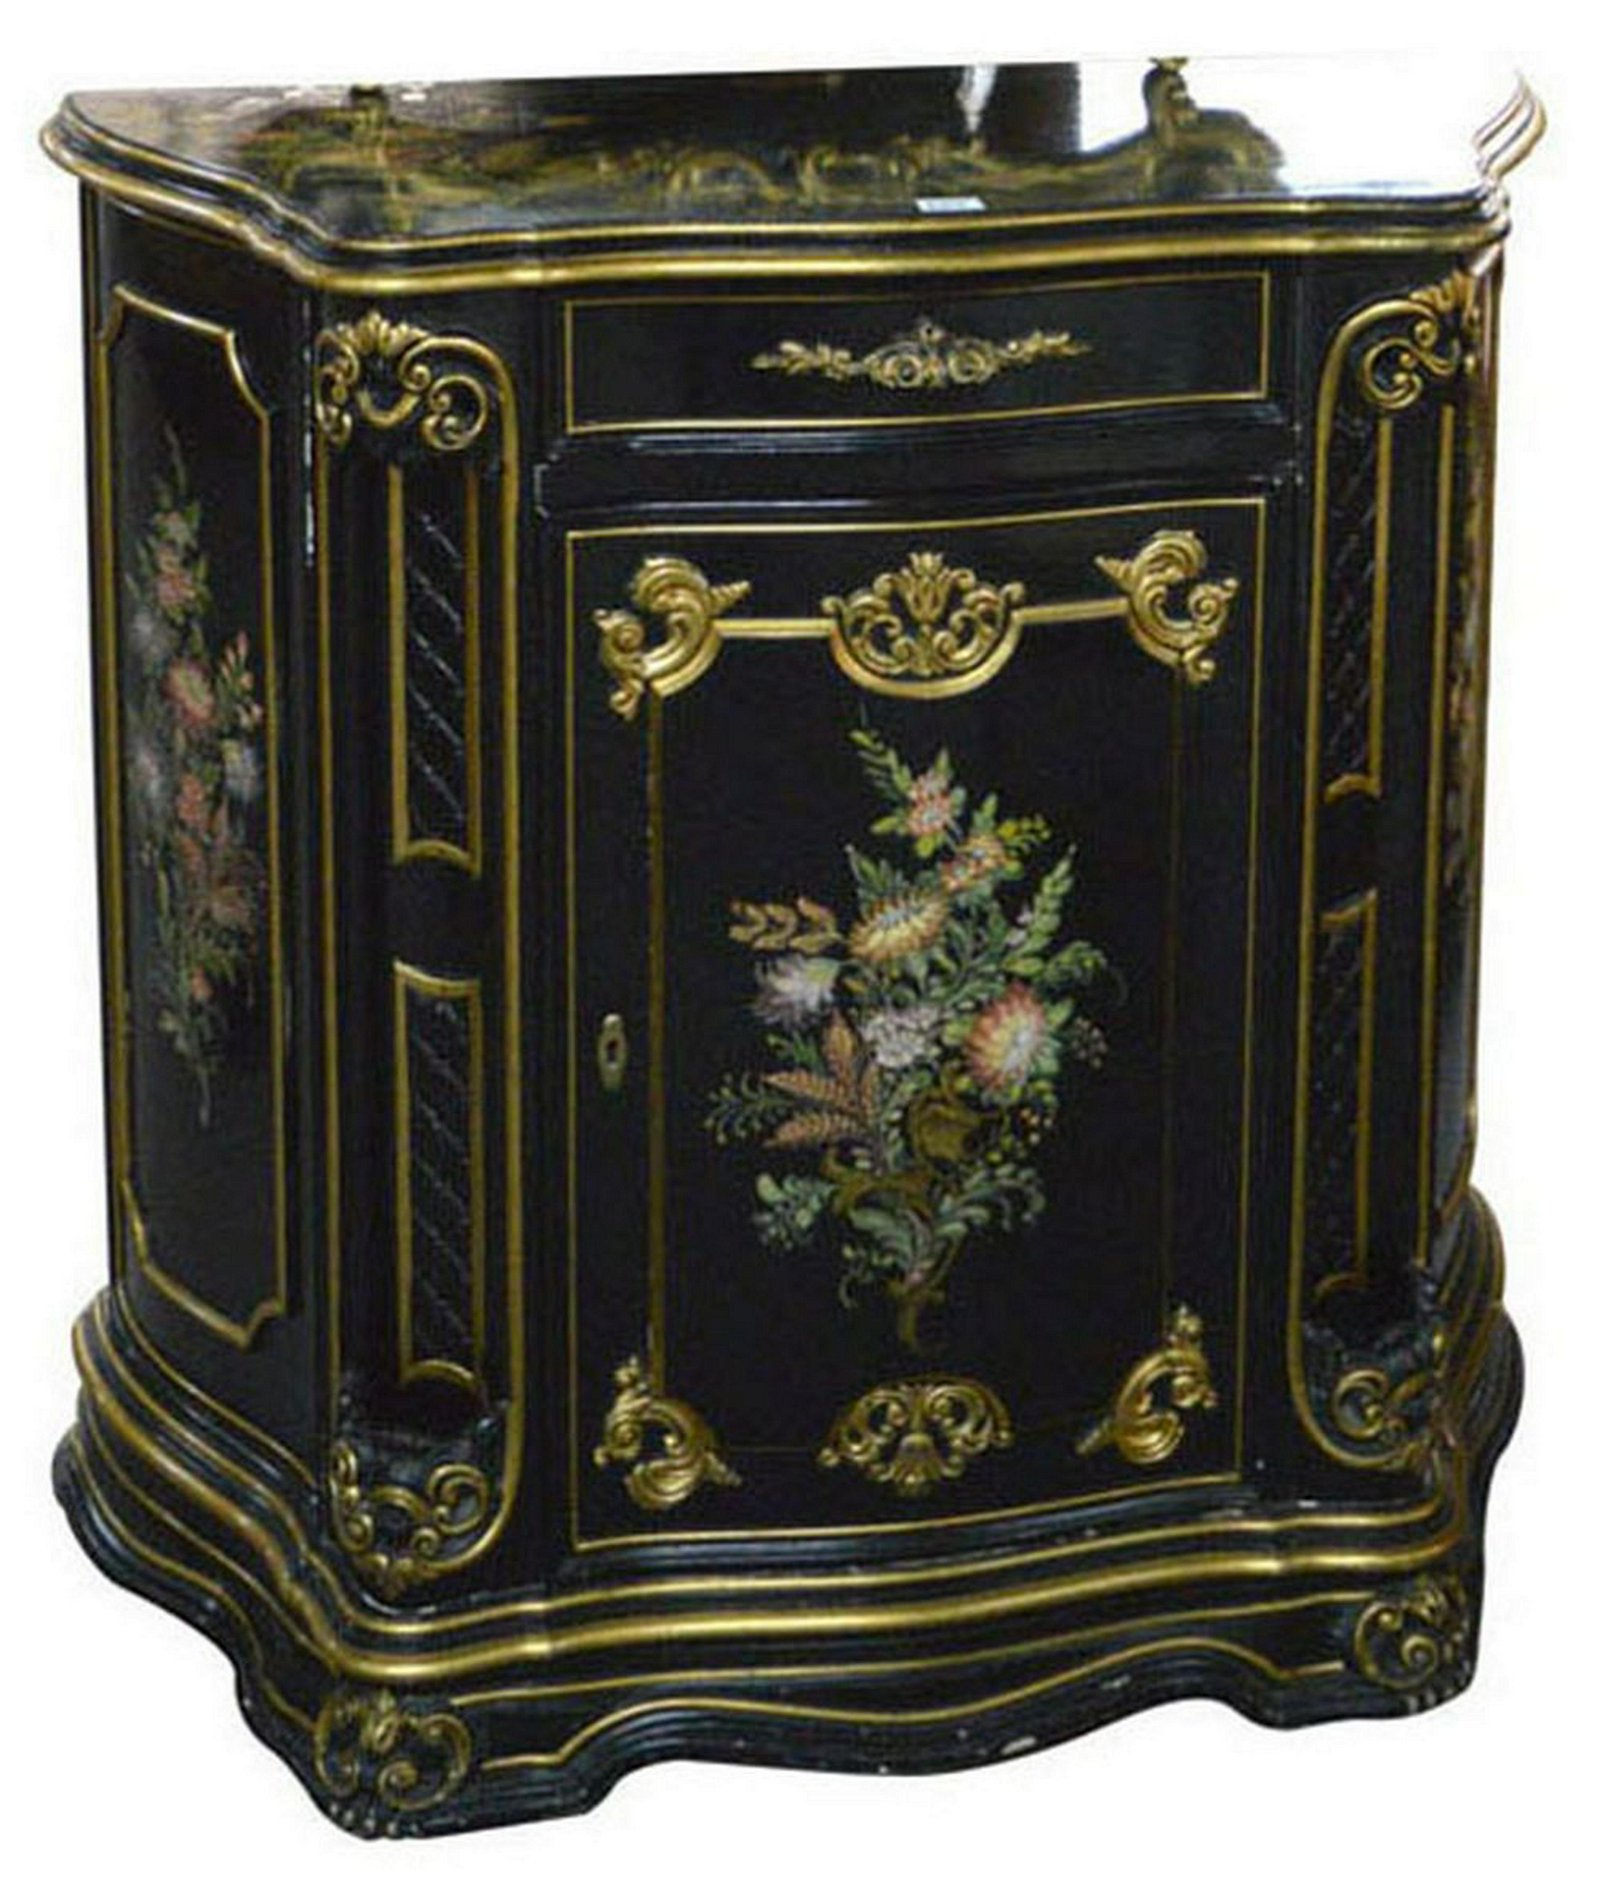 Louis XV-style console